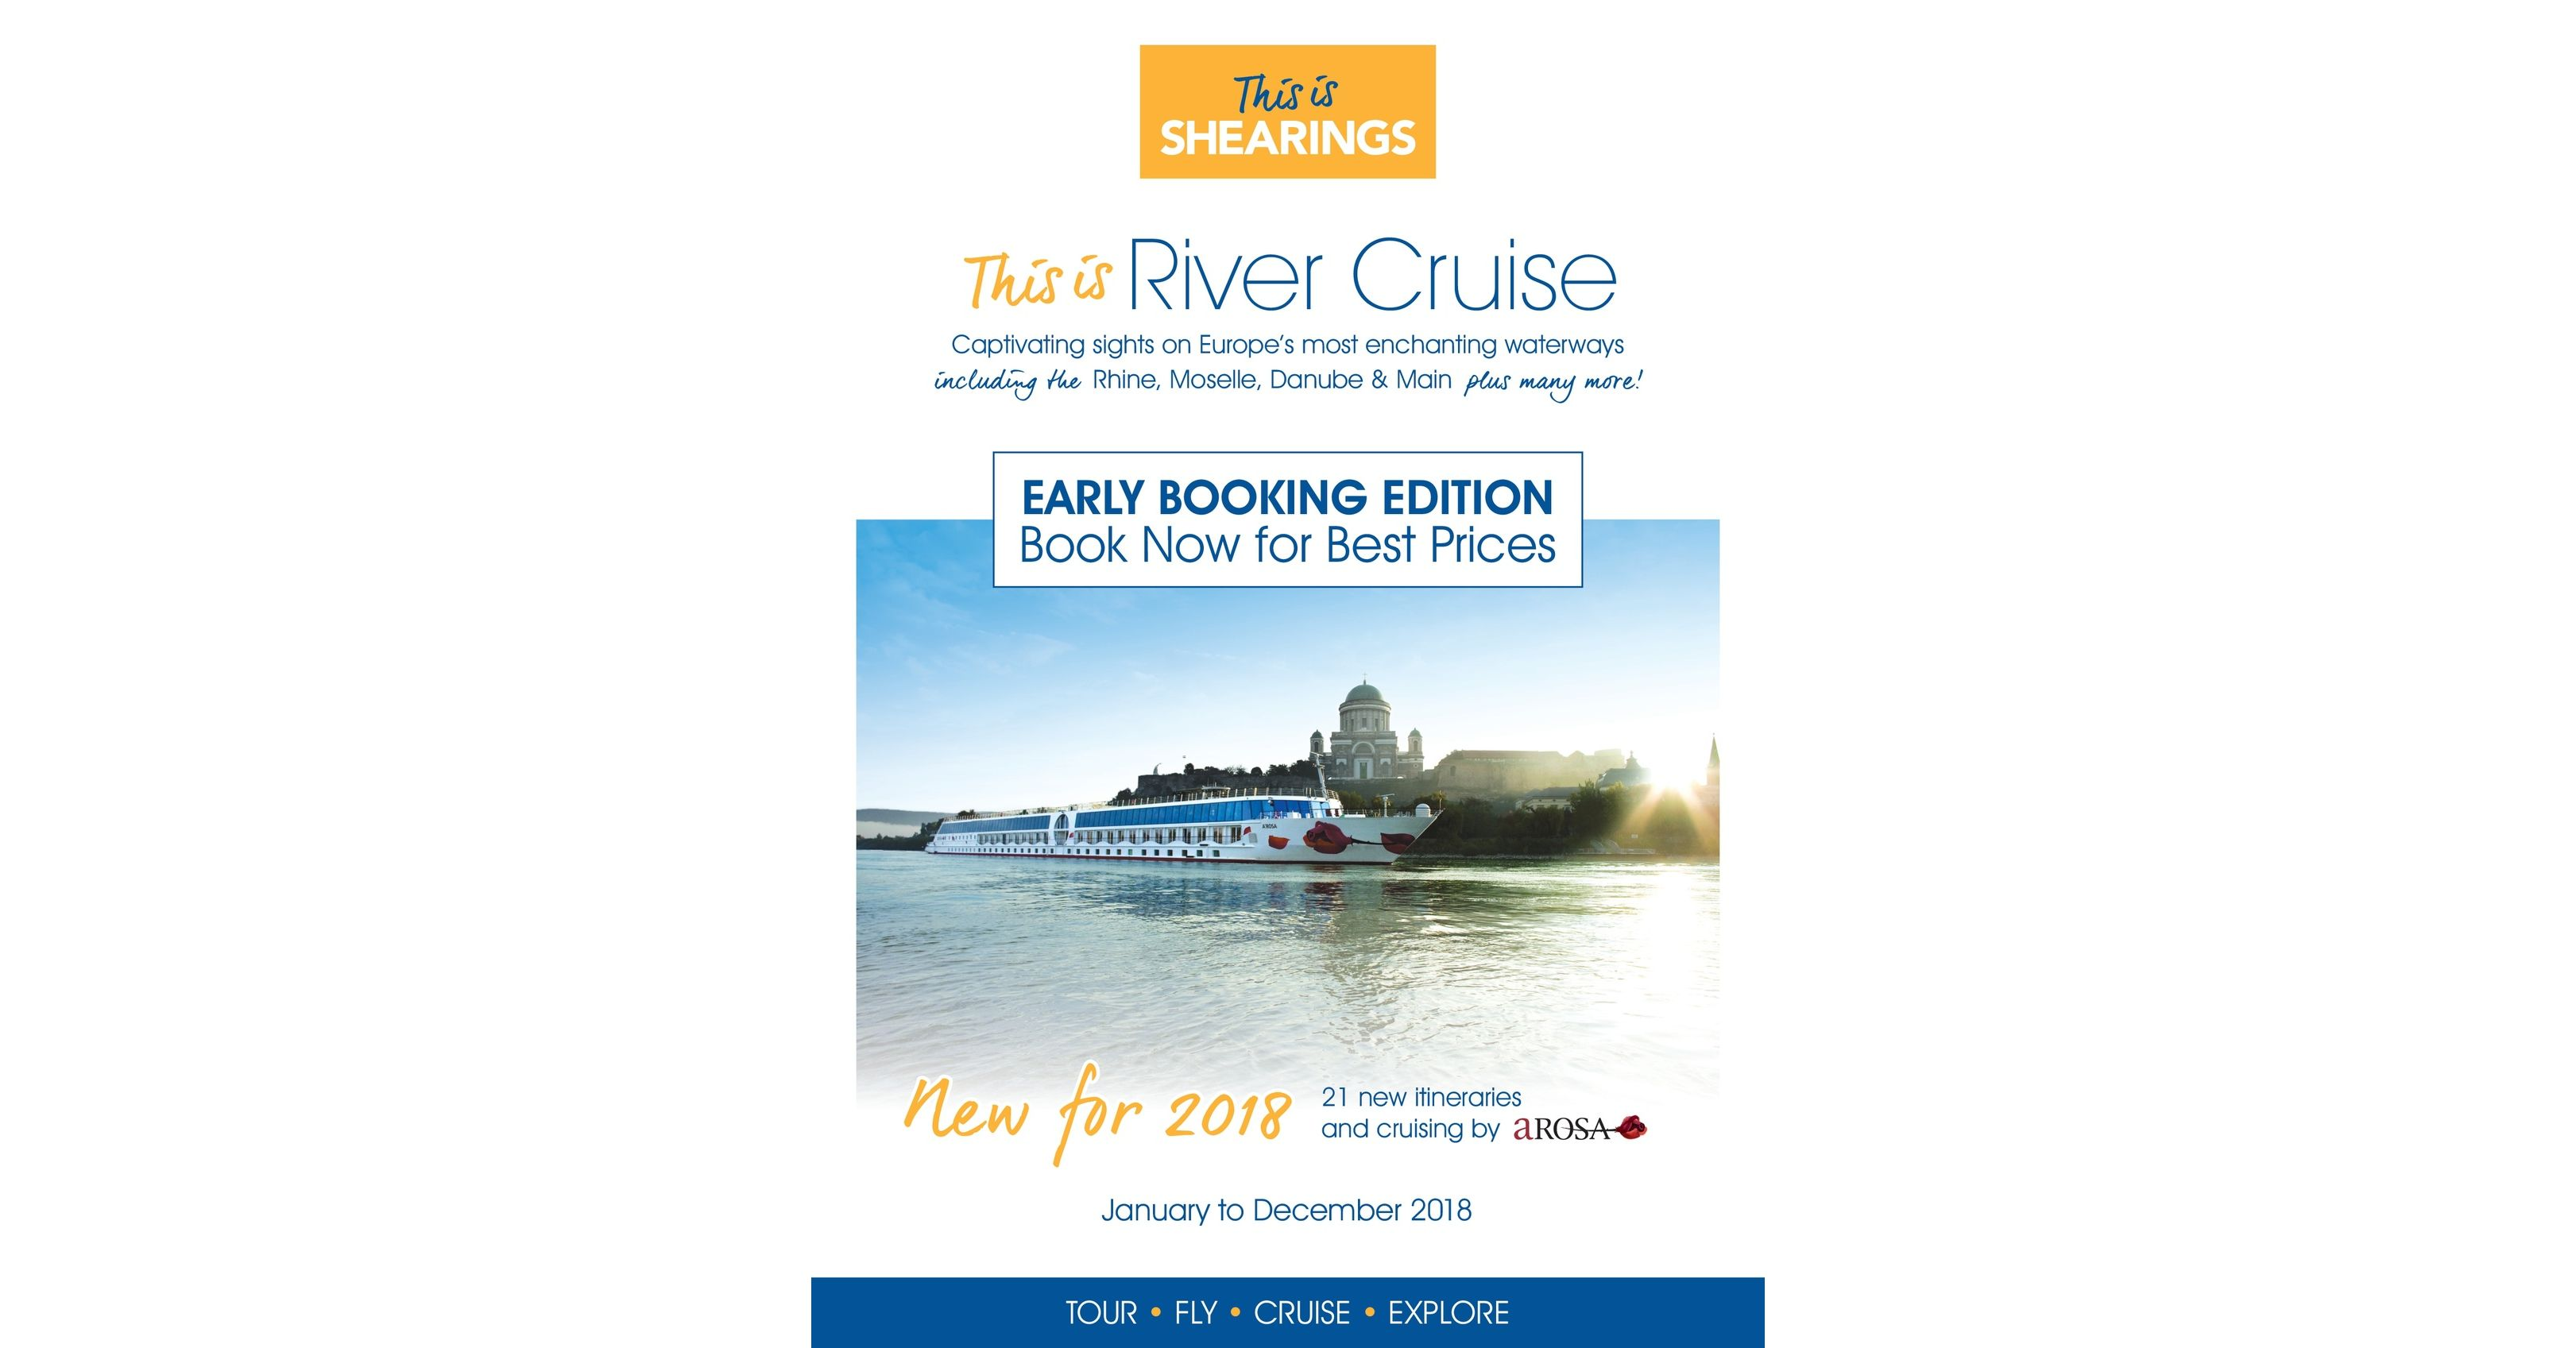 Shearings 2018 River Cruise Brochure